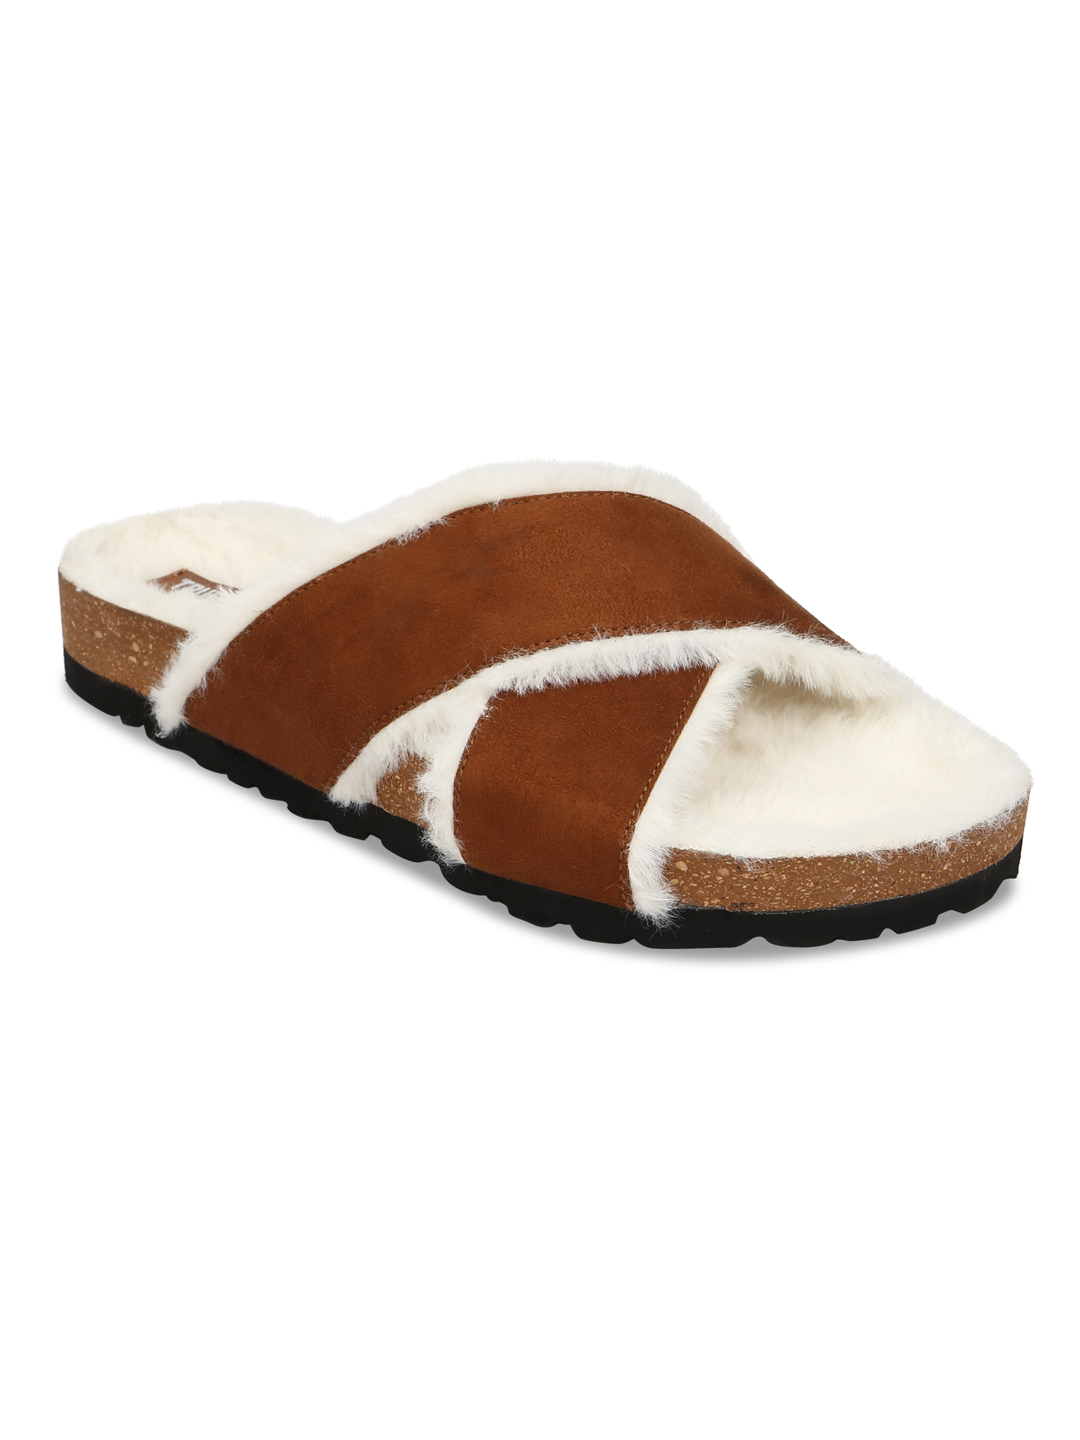 Truffle Collection | Truffle Collection Tan Furry Crisscross Strap Cork Sandals